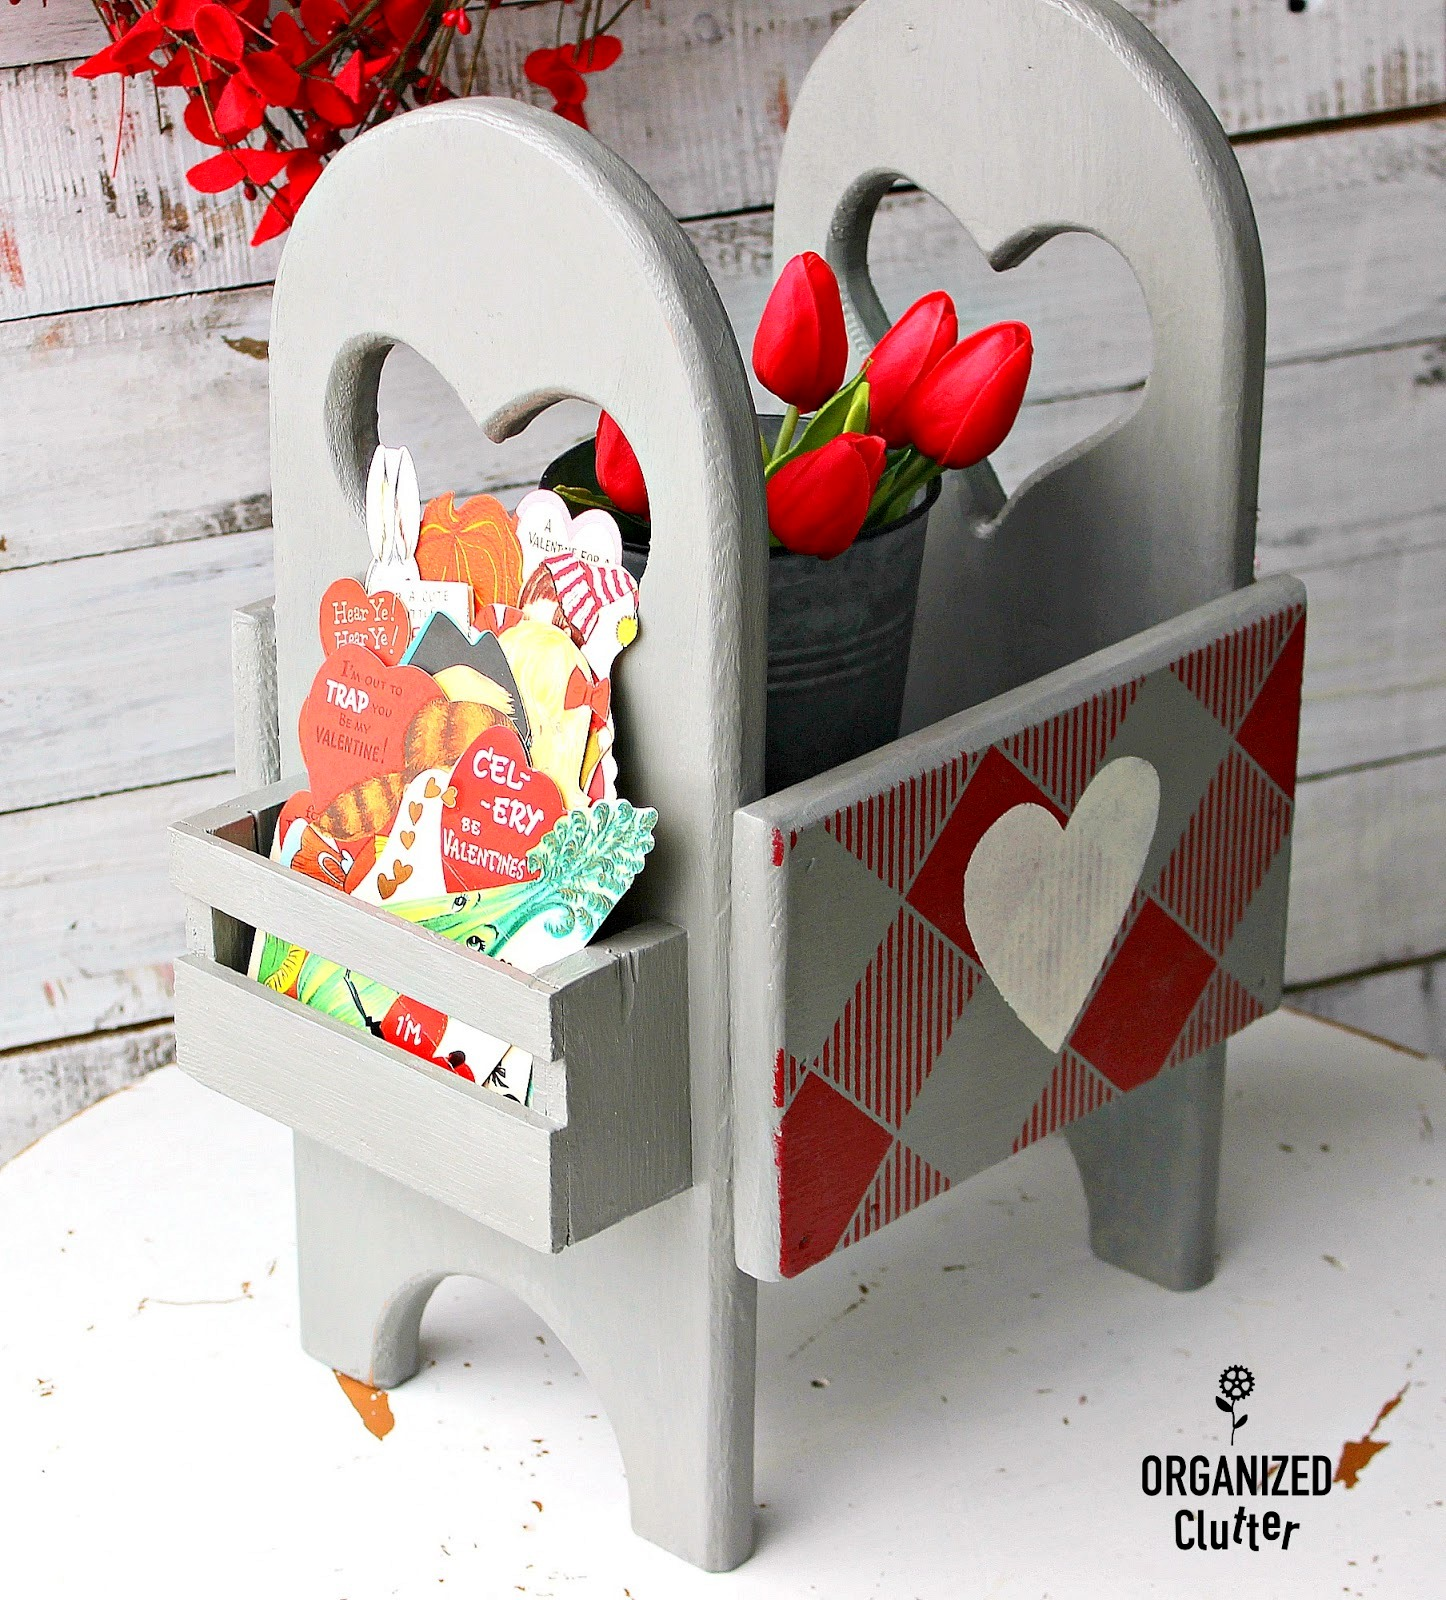 Buffalo Checked Valentine's Day caddy for flowers and cards by Organized Clutter, featured on Funky Junk Interiors